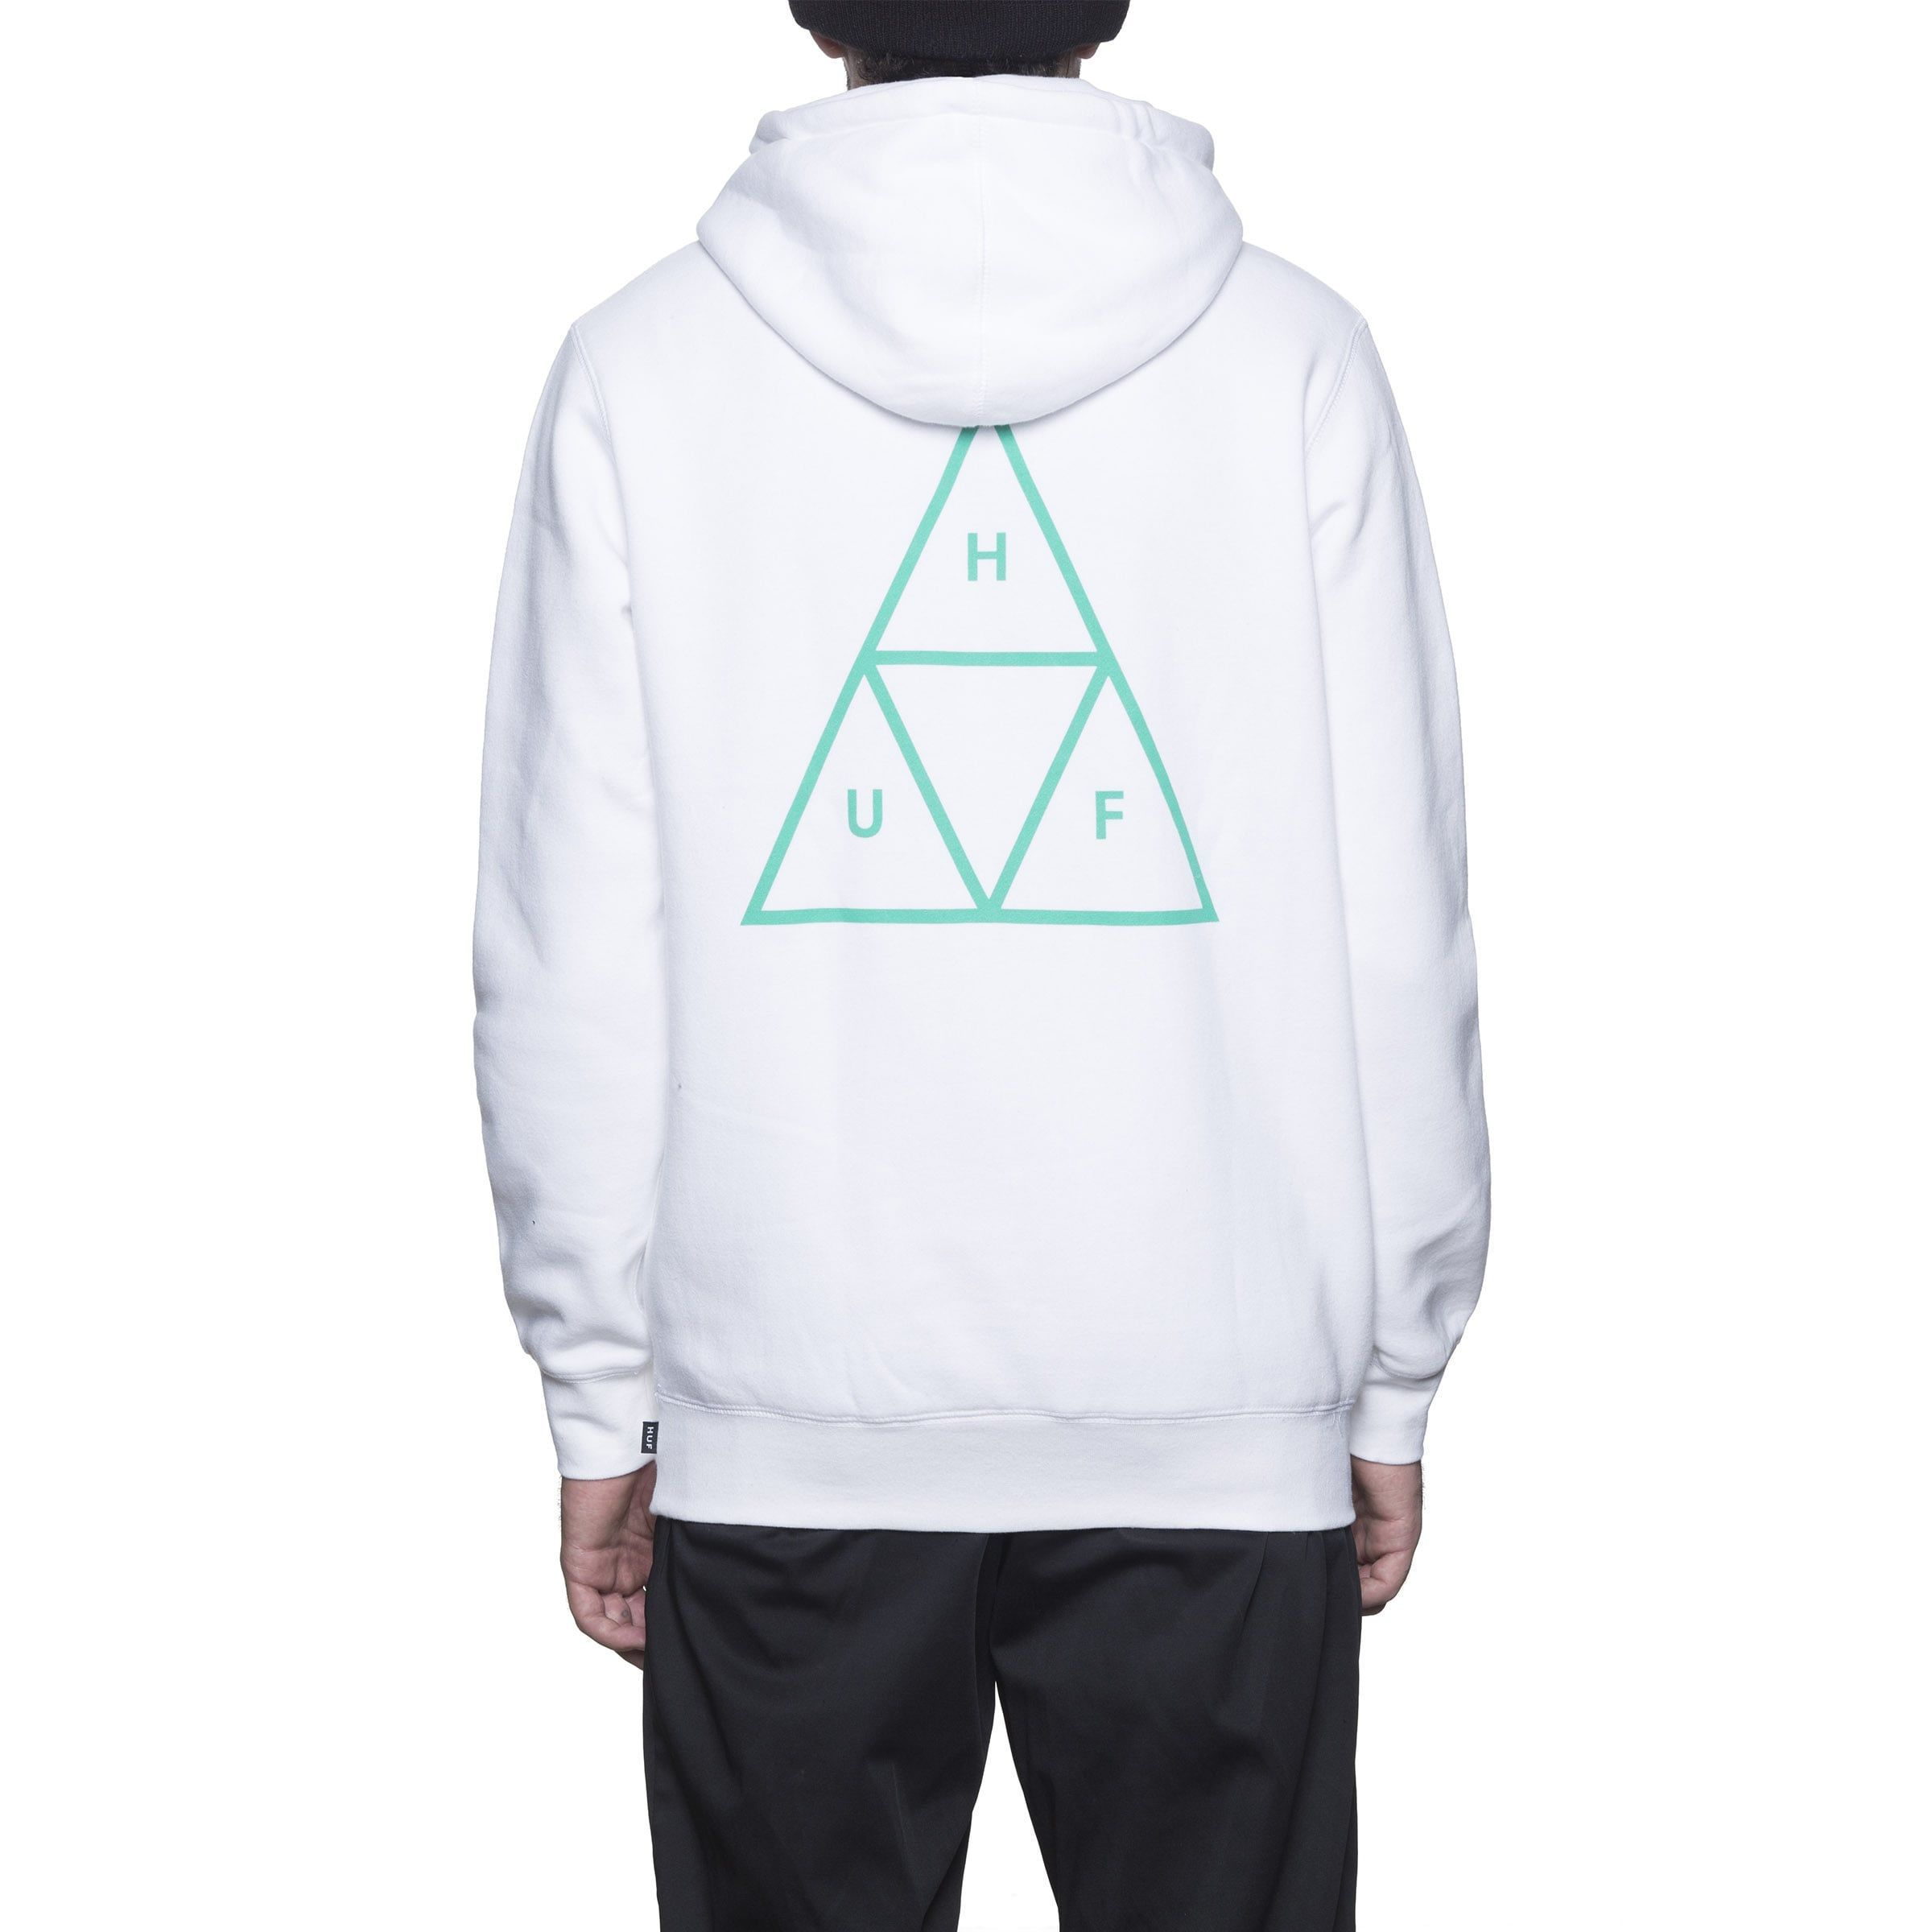 日本未入荷!HUFTRIPLE TRIANGLE PULLOVER HOOD送料込